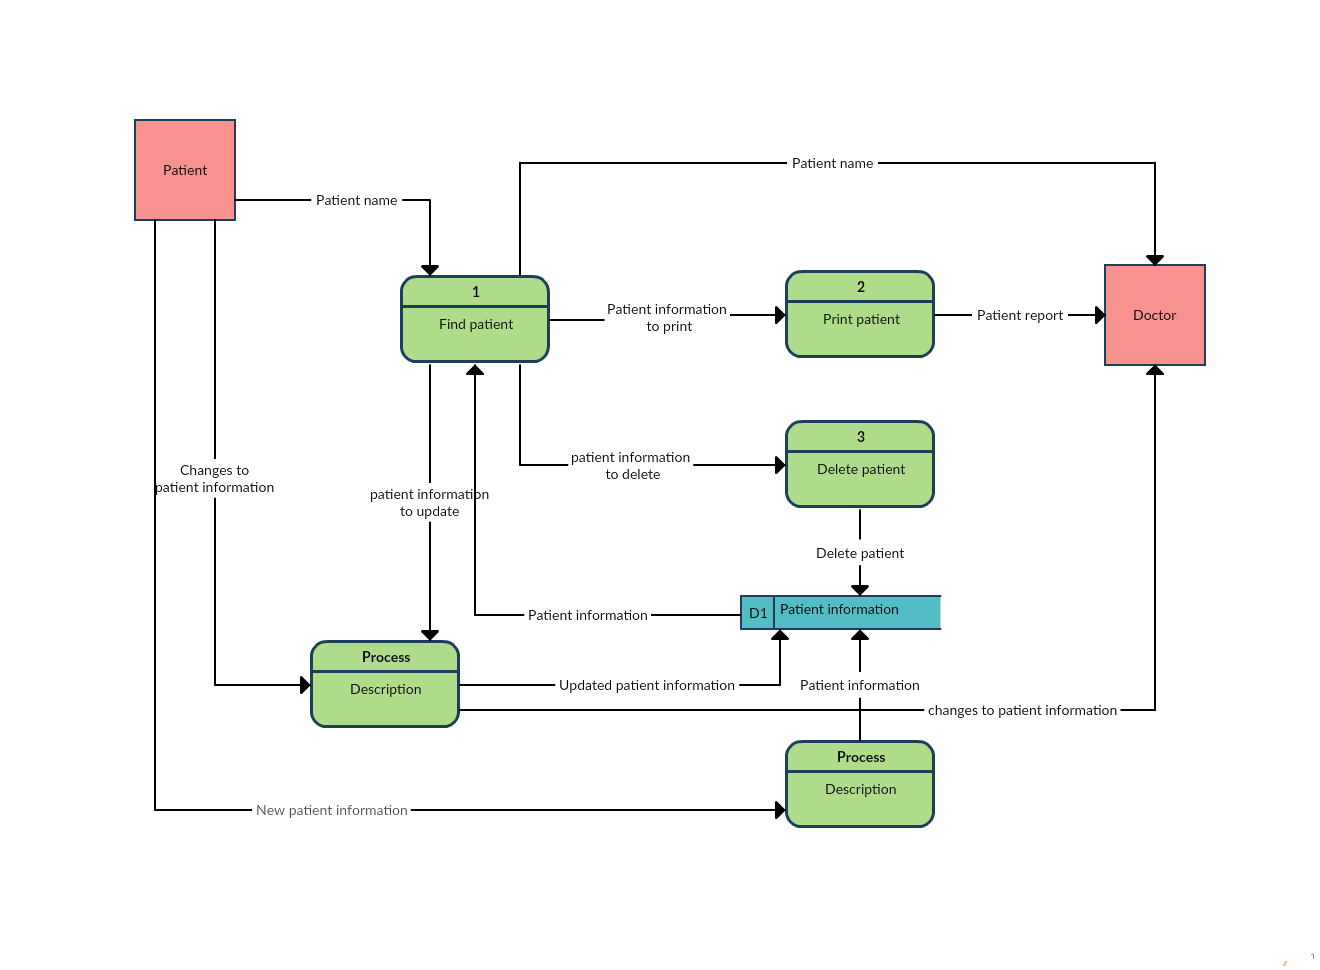 Data Flow Diagram Template of a Patient Information System